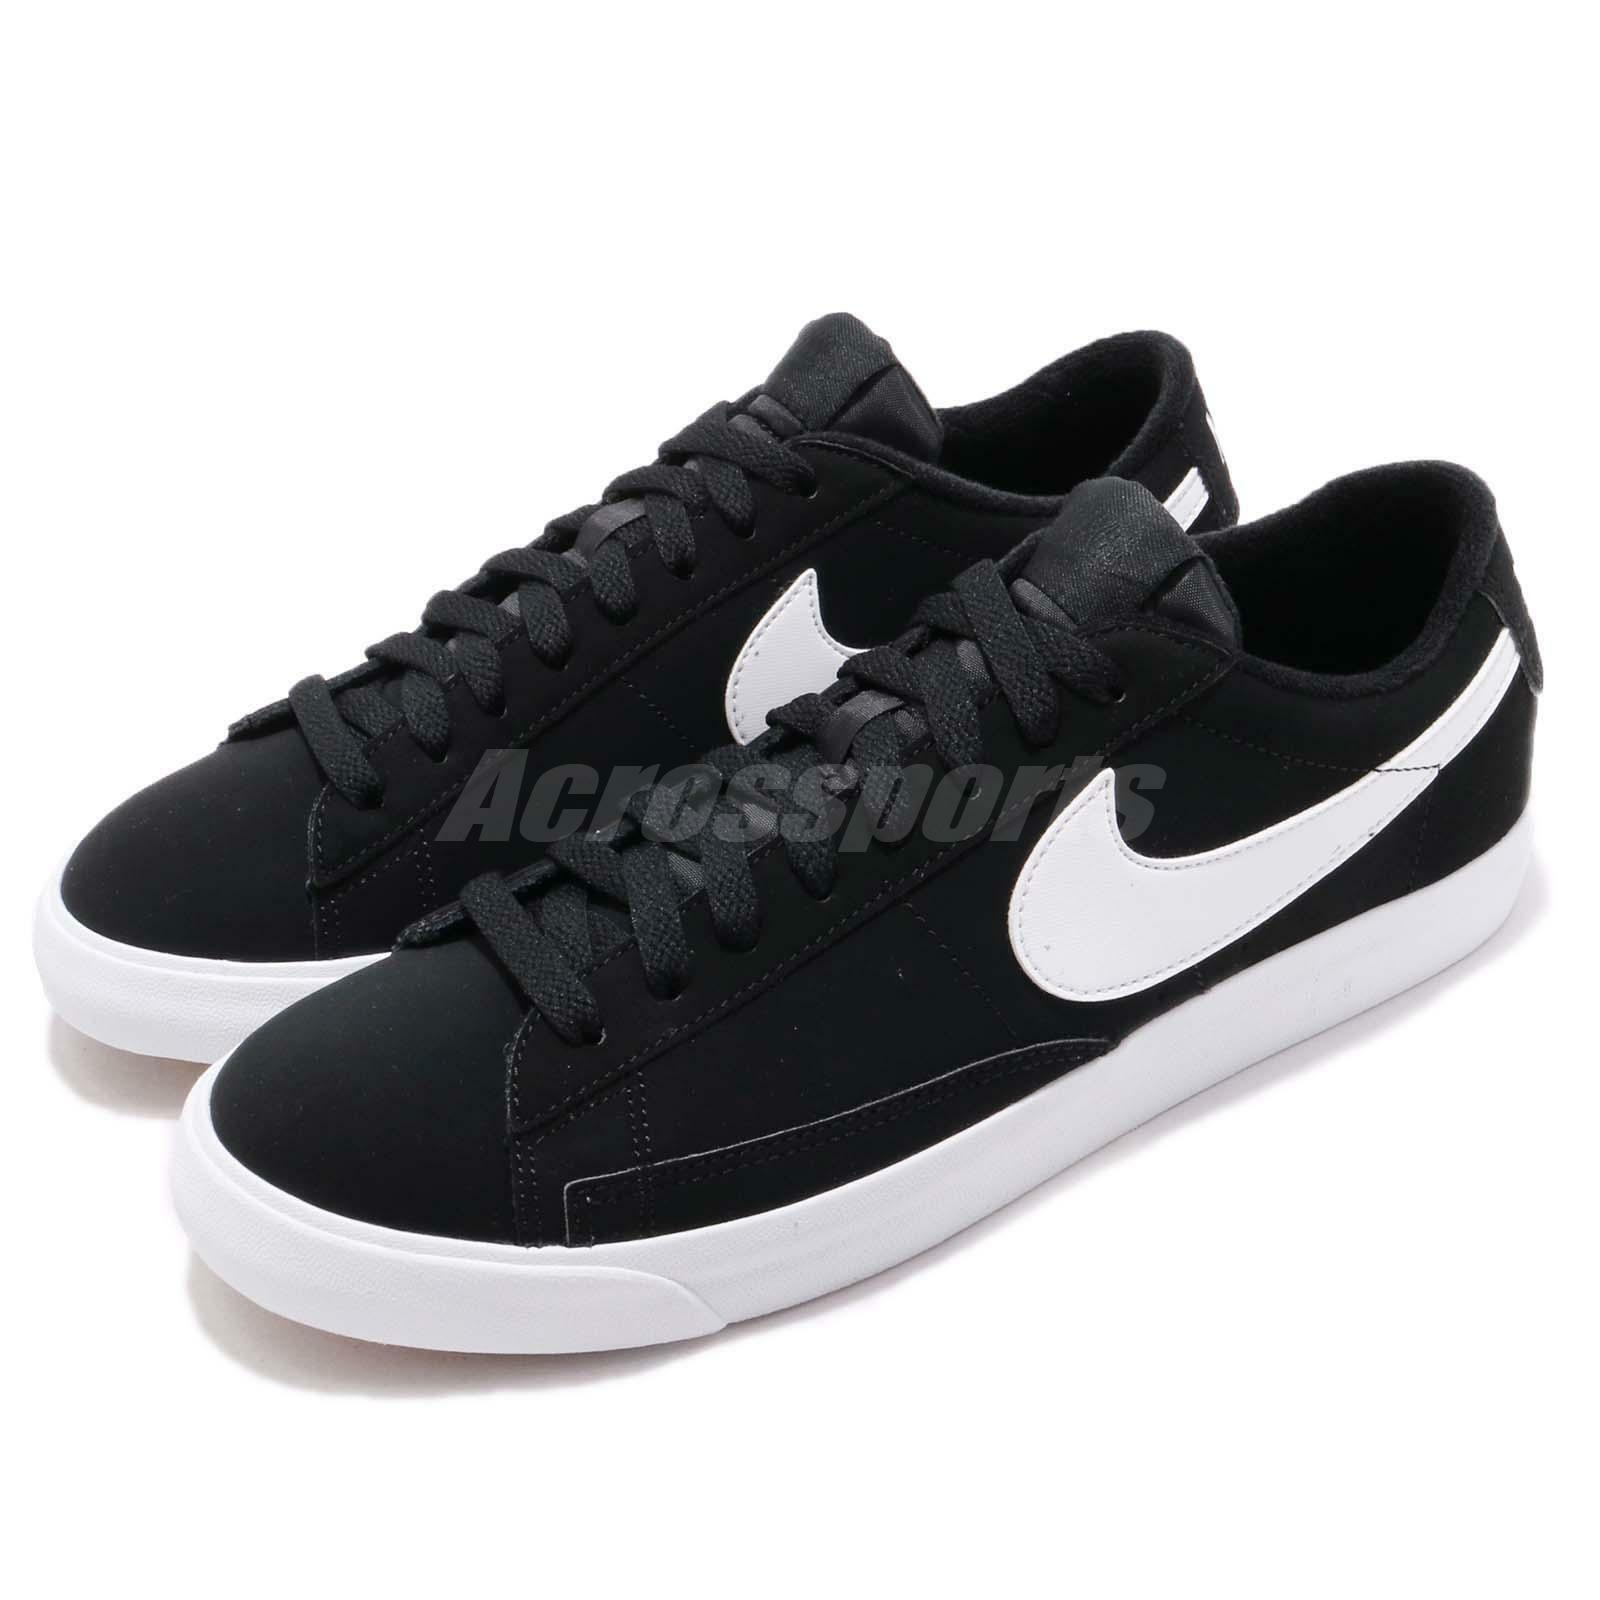 Nike Blazer Low 09 ND Negro Blanco Zapatos Hombre casuales Skate Boarding Zapatos Blanco  371760029 b9a86f